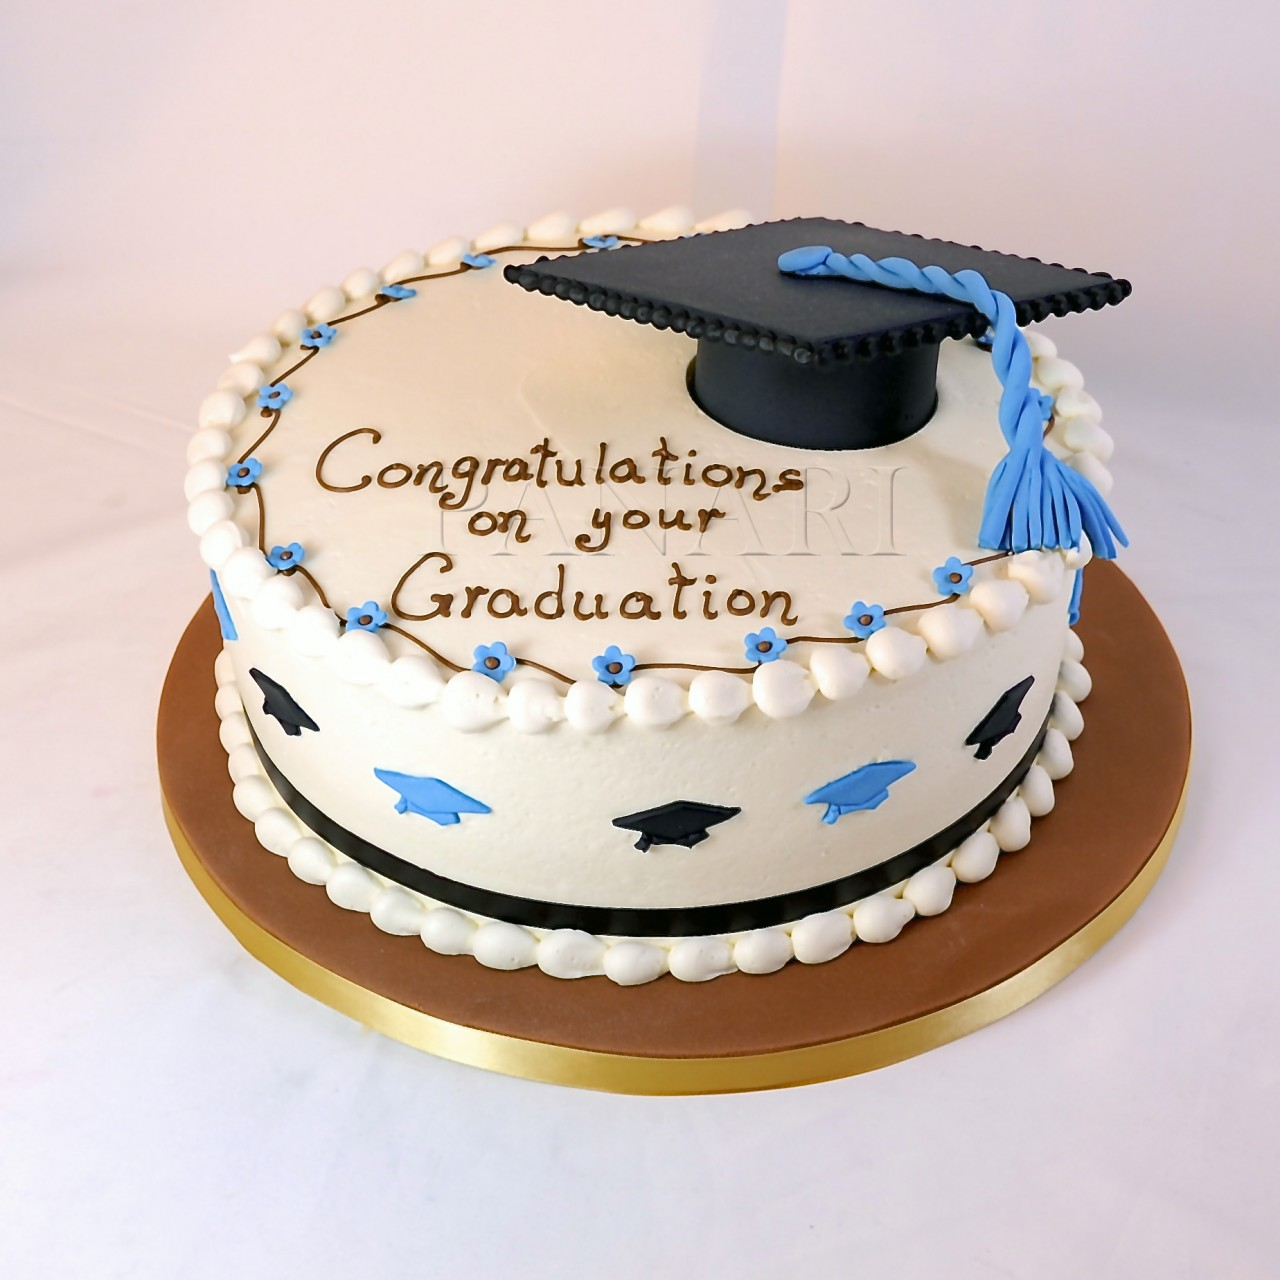 Cake Design Graduation : 10 High School Graduation Cake Design CAKE DESIGN AND ...